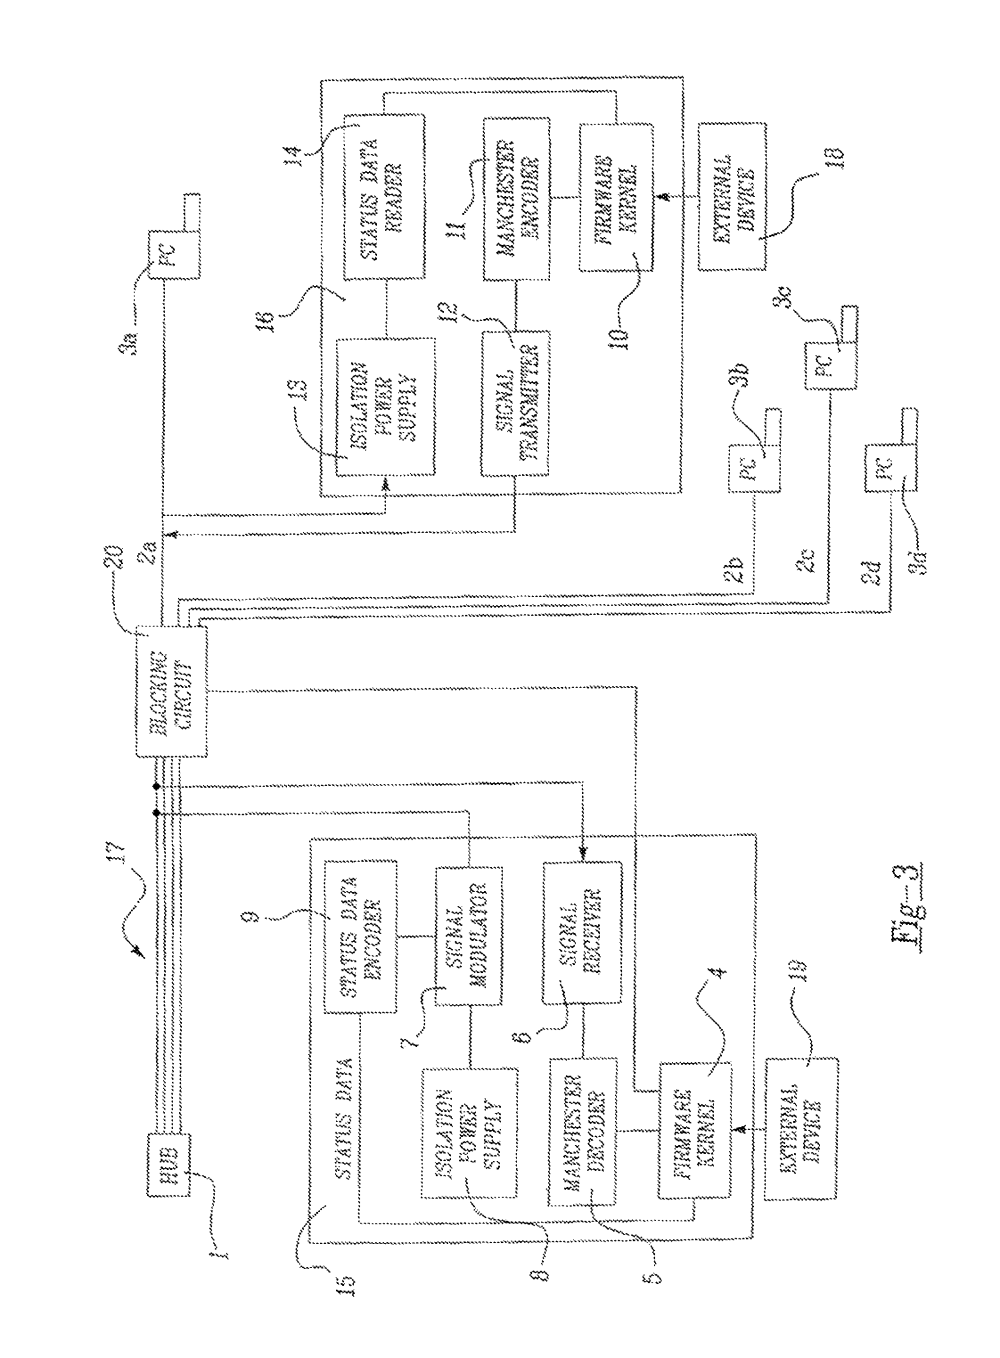 medium resolution of patent images patent images patent images